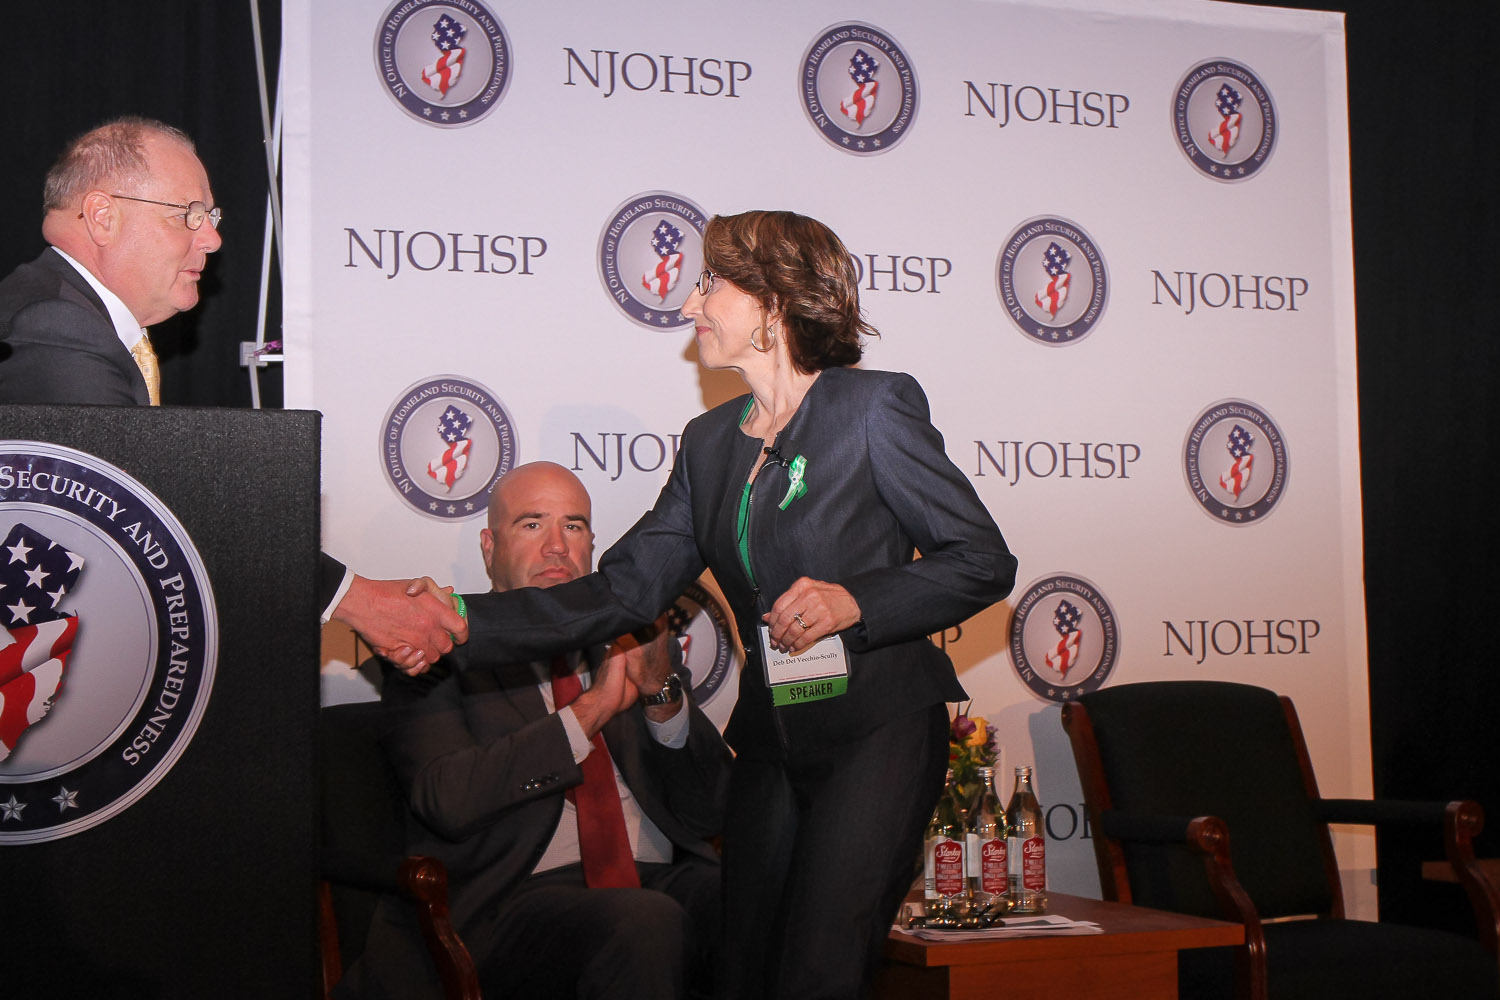 Colonel Rick Fuentes, Superintendent of the New Jersey State Police,  welcomes Deb to speak at NJOHSP.